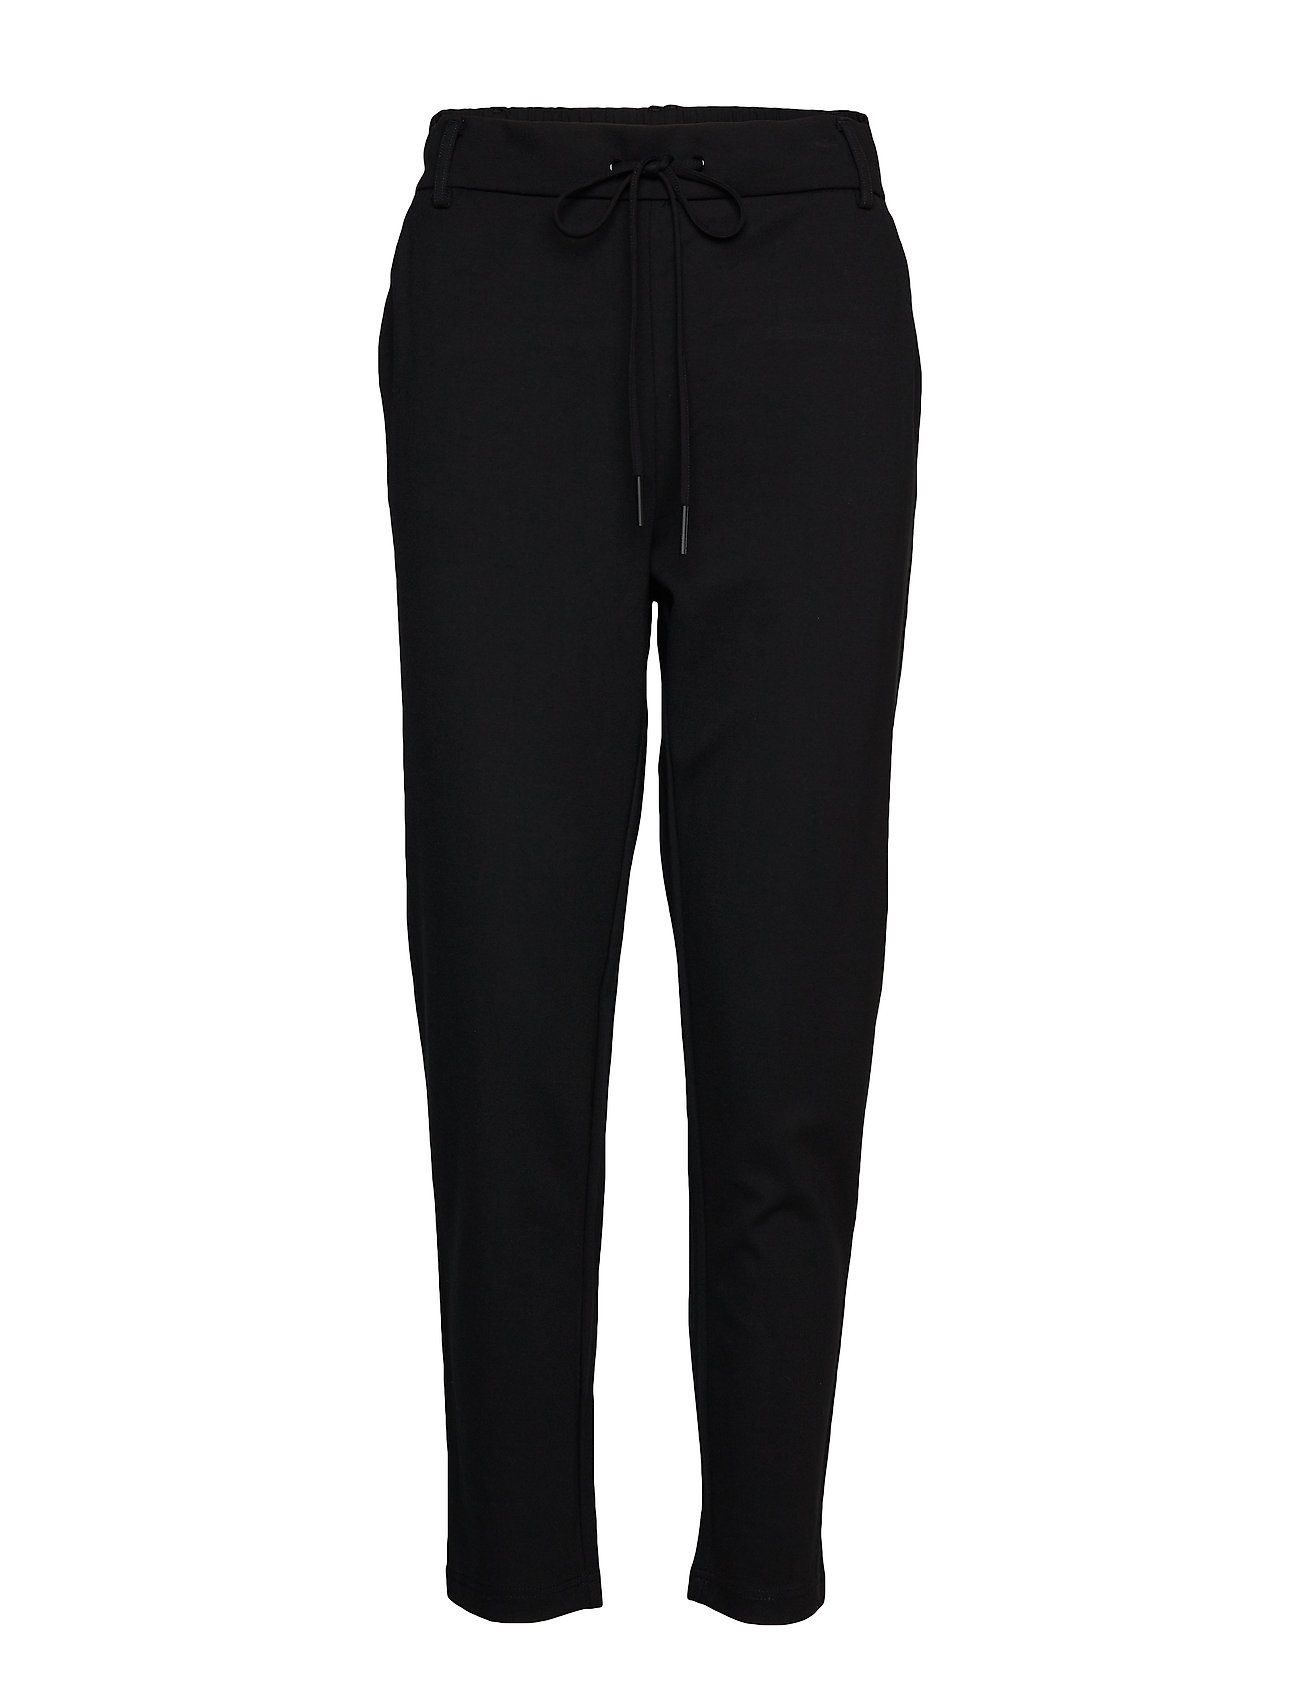 Image of Cargoldtrash Classic Pant Noos Casual Bukser Sort ONLY Carmakoma (3186400921)